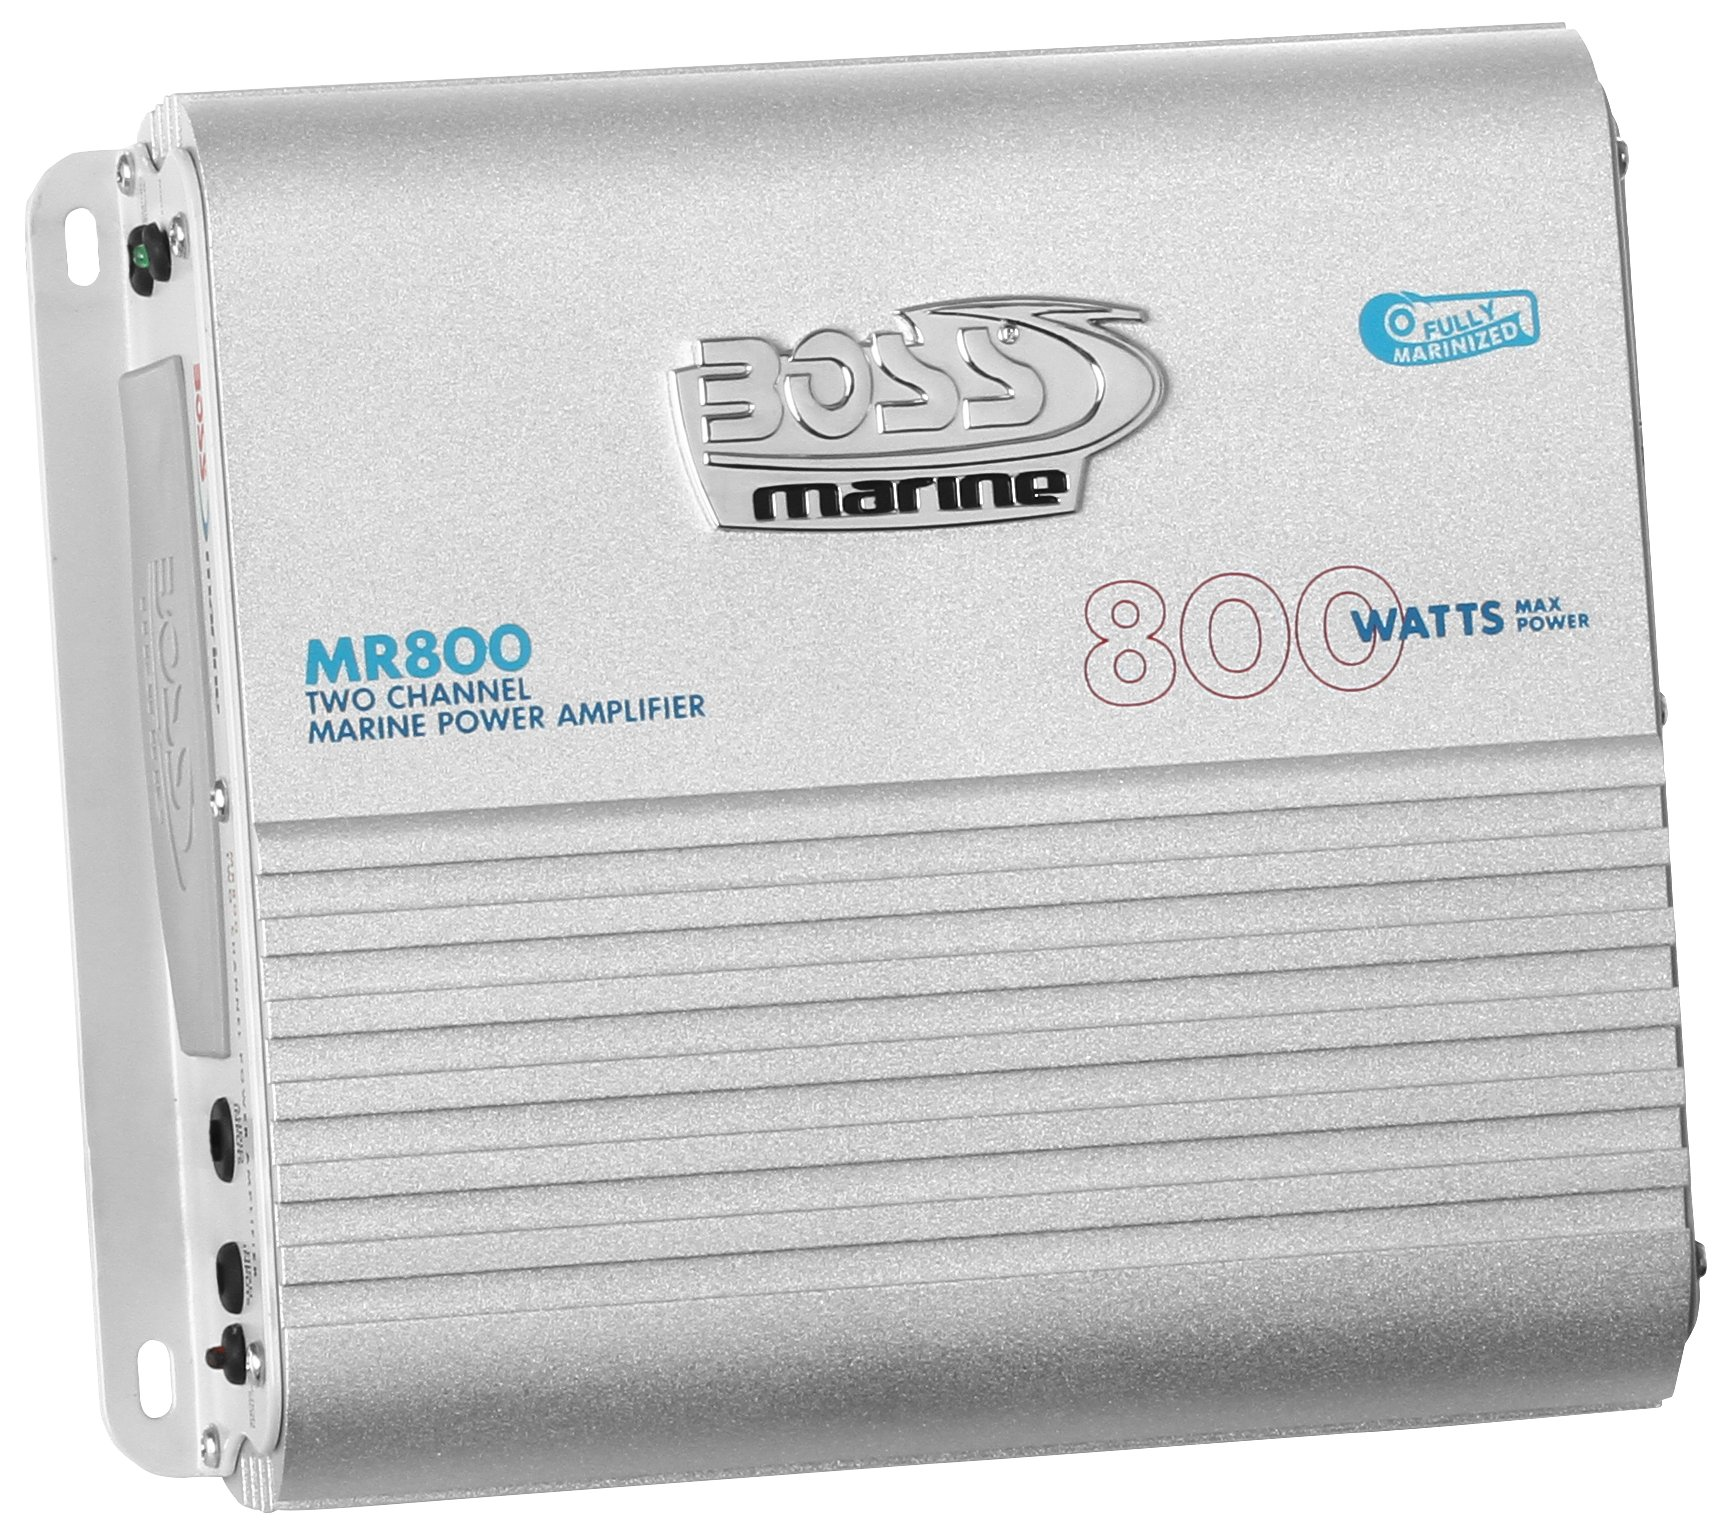 Best Rated In Marine Amplifiers Helpful Customer Reviews Addition 2 4 Ohm Dvc Subs To Channel On Wiring Boss Audio Mr800 Grade 800 Watt Stable